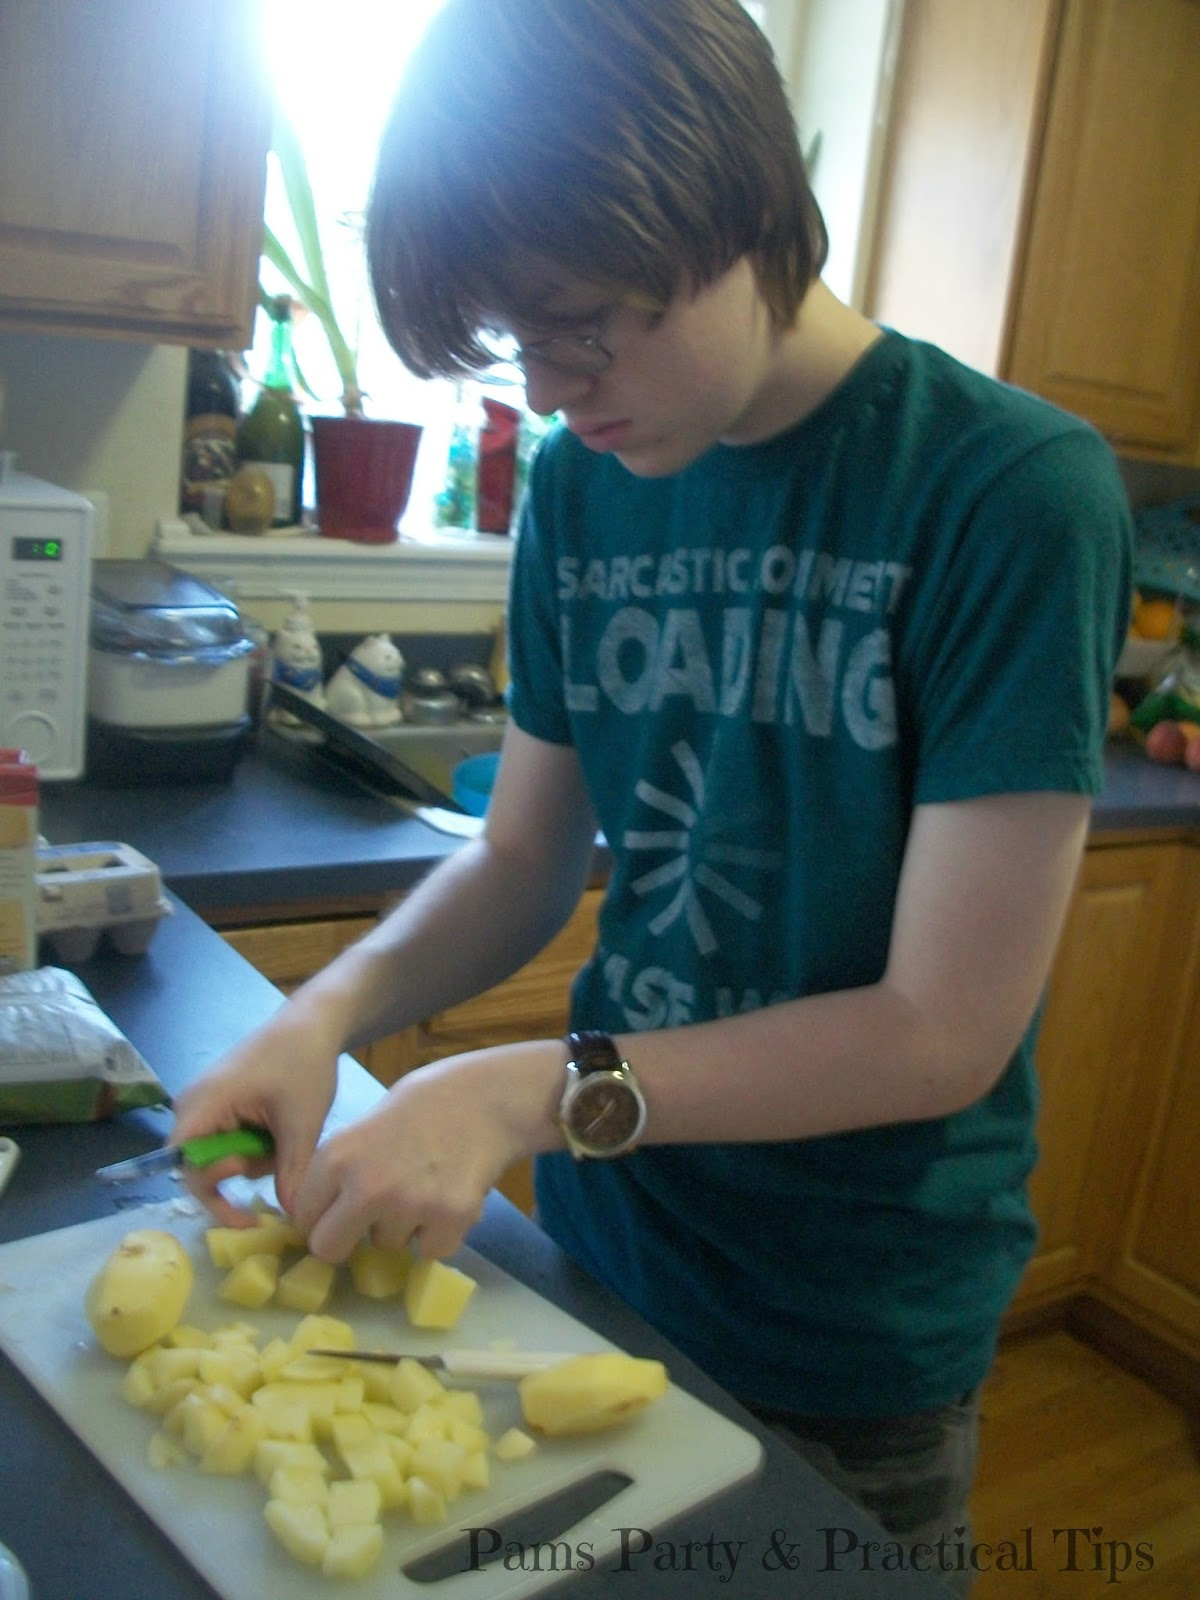 Cutting potatoes for homemade potato salad